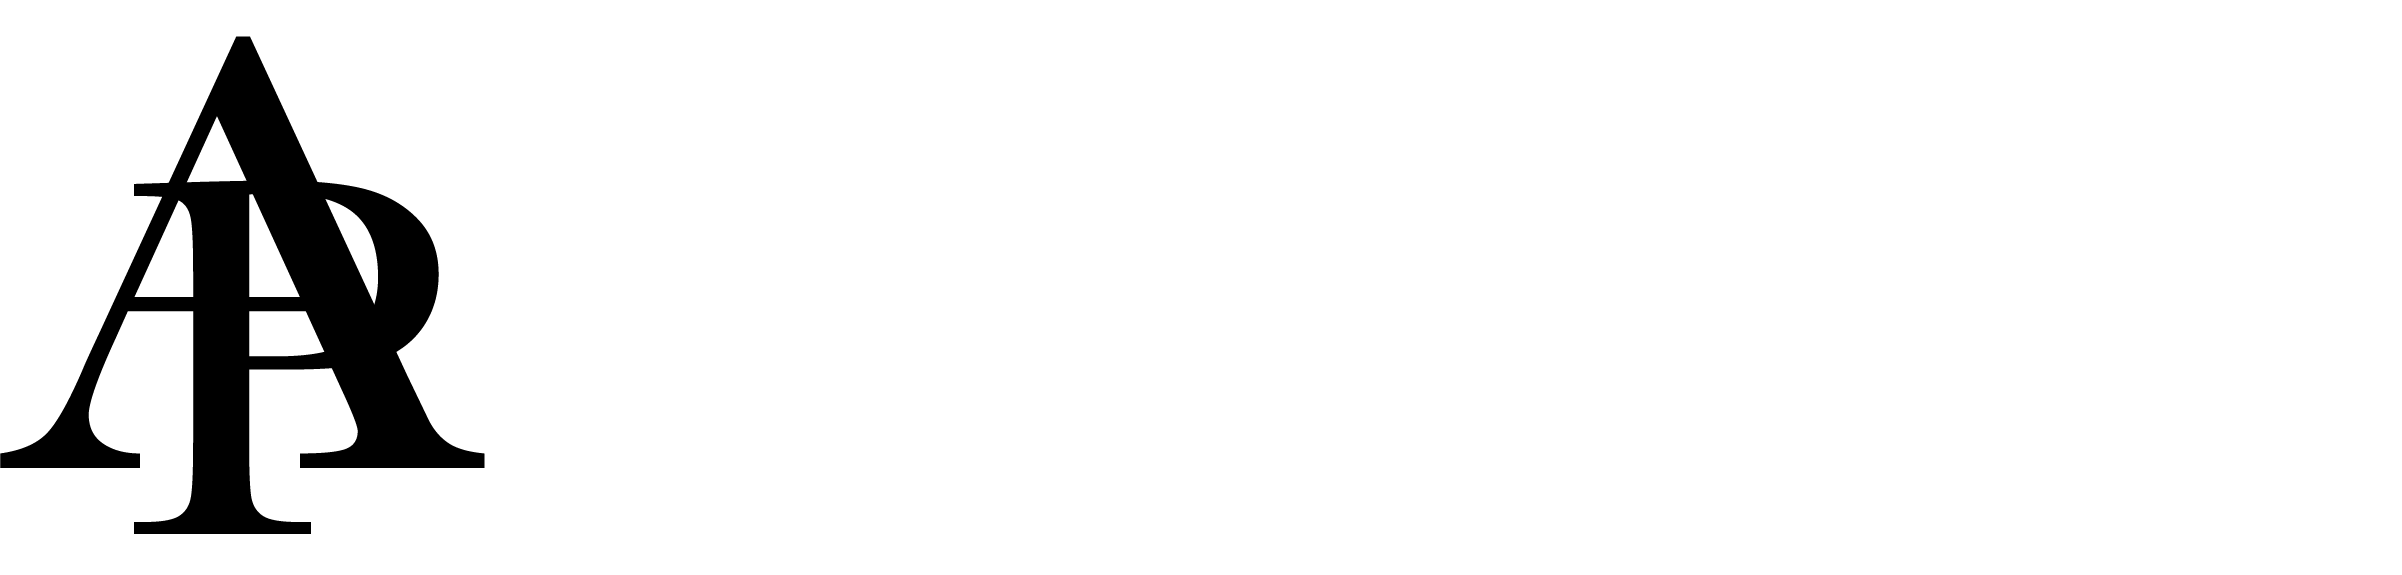 ARDENPROJECTS FOOTER LOGO.png